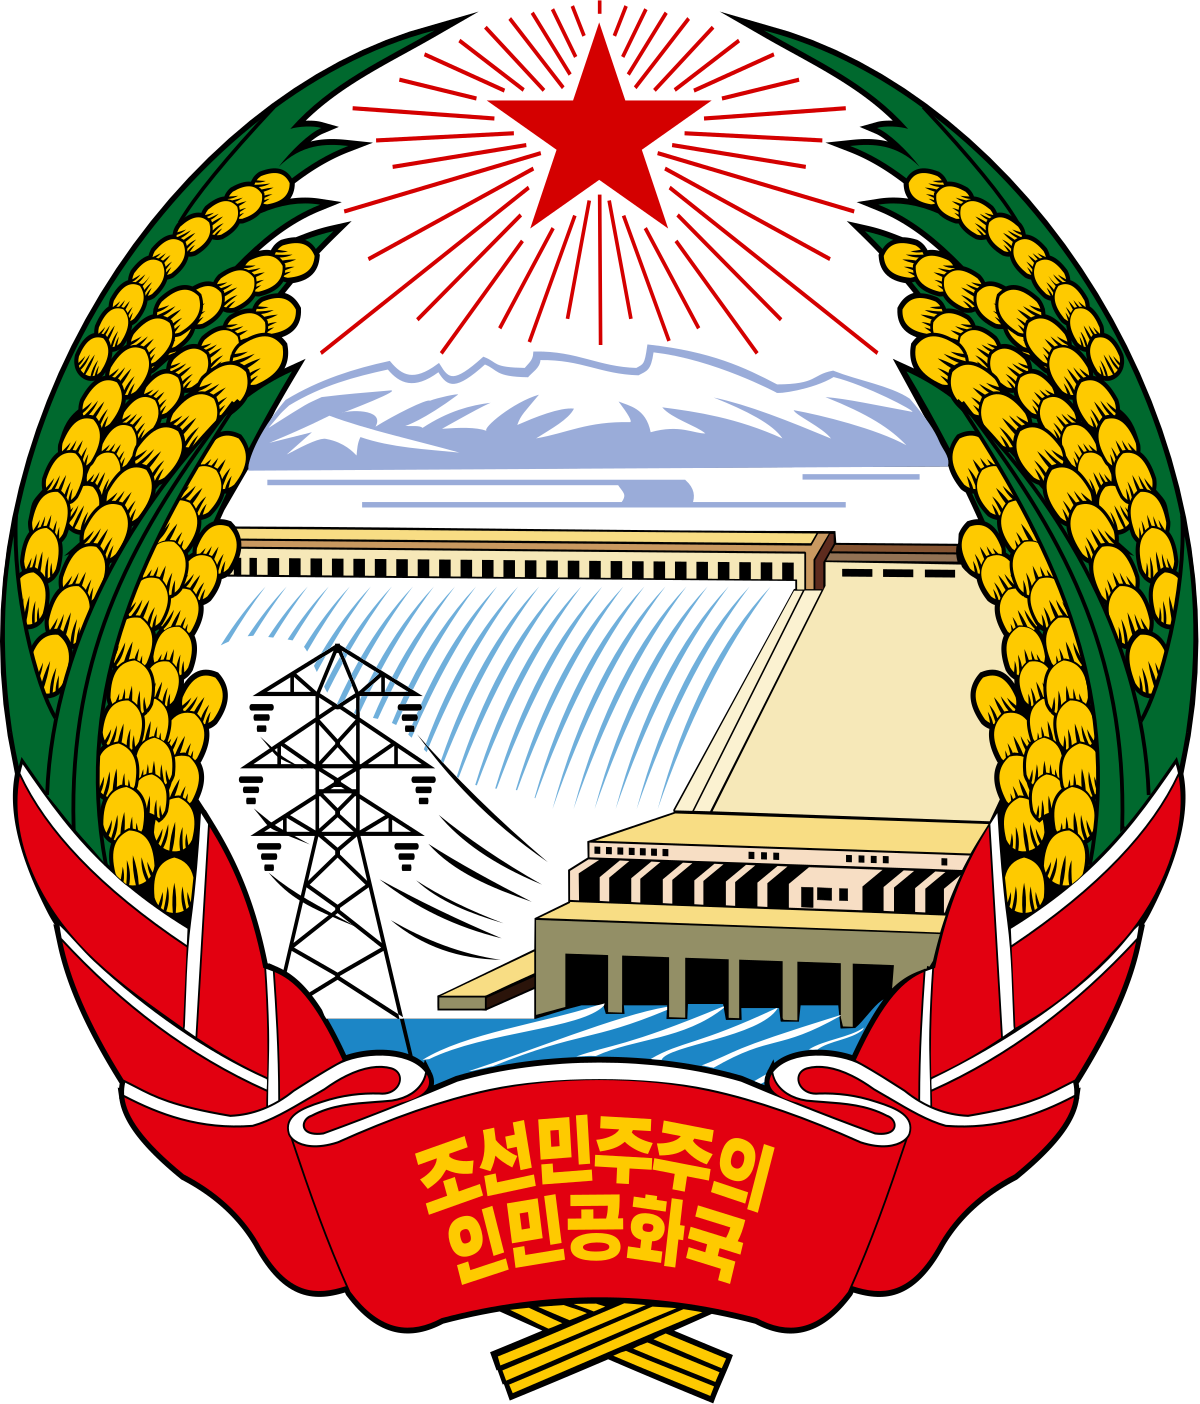 Government giving money to illegals clipart picture transparent library Human rights in North Korea - Wikipedia picture transparent library